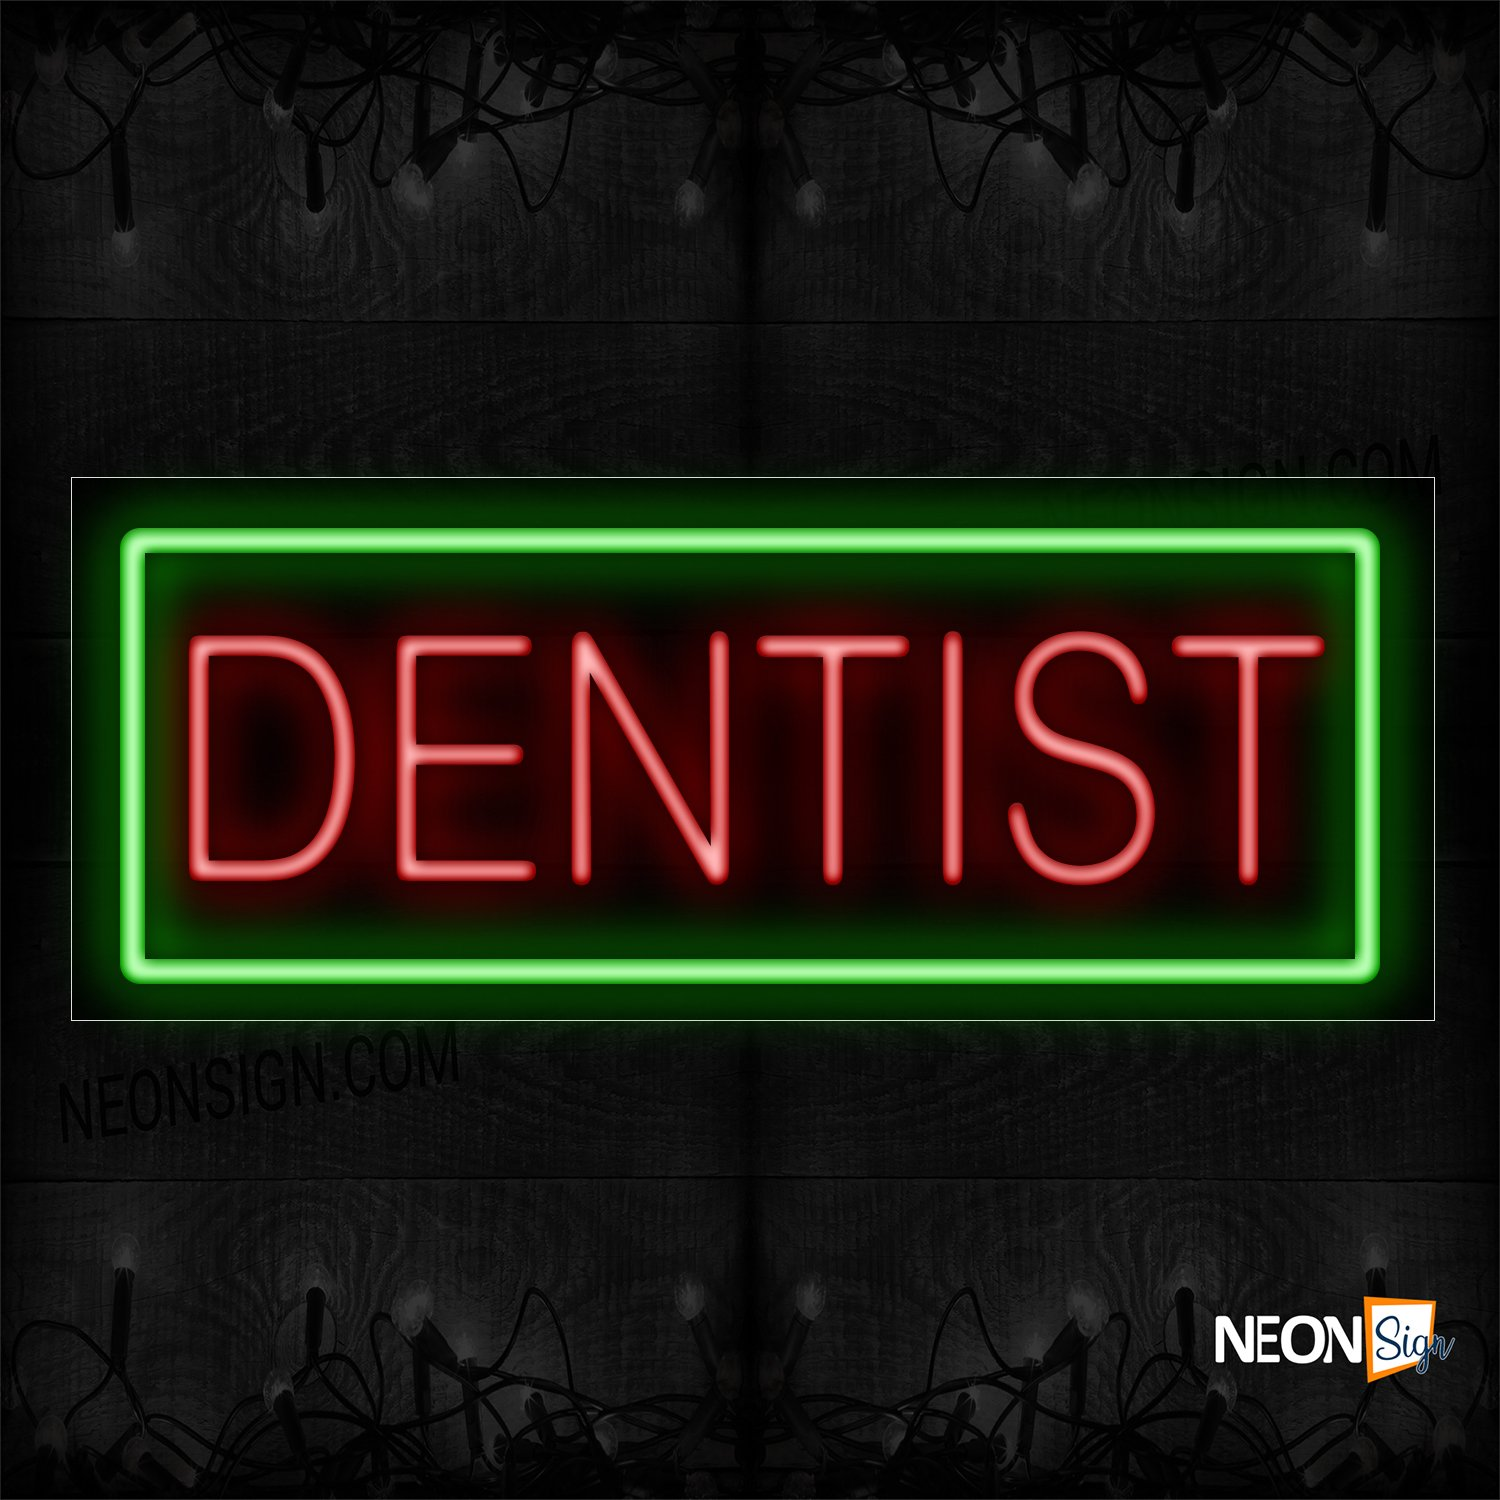 Image of 10048 Dentist In Red With Green Border Neon Sign_13x32 Black Backing